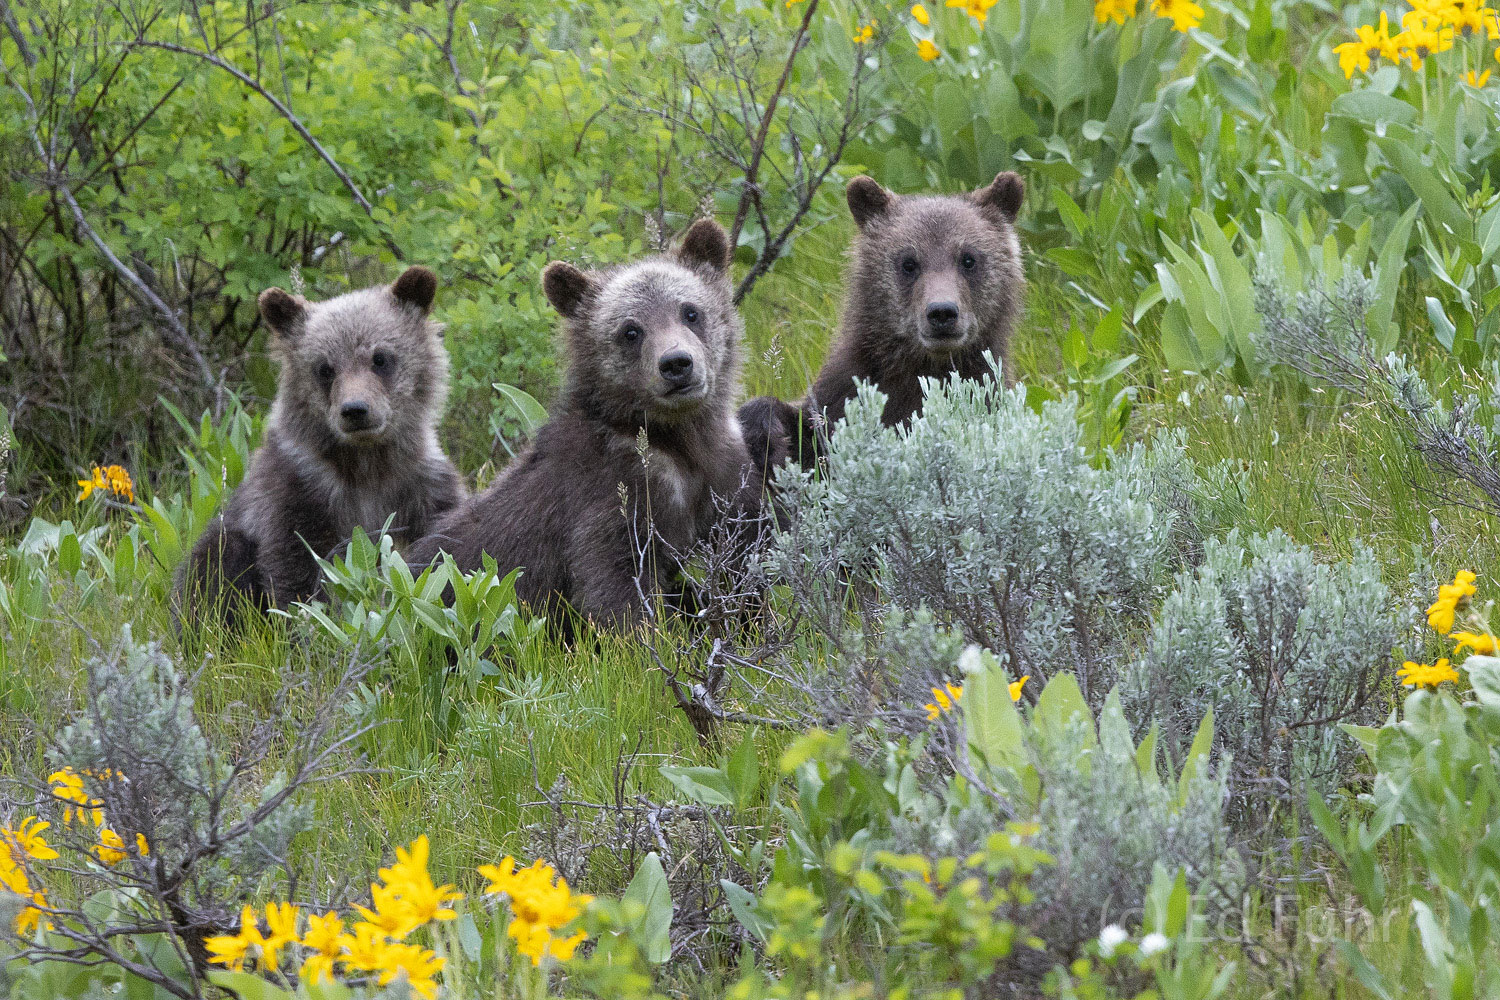 399 cub, grizzly, 399, 610, subadult, grizzlies, cub, quad, summer, grand teton, , Tetons, photo